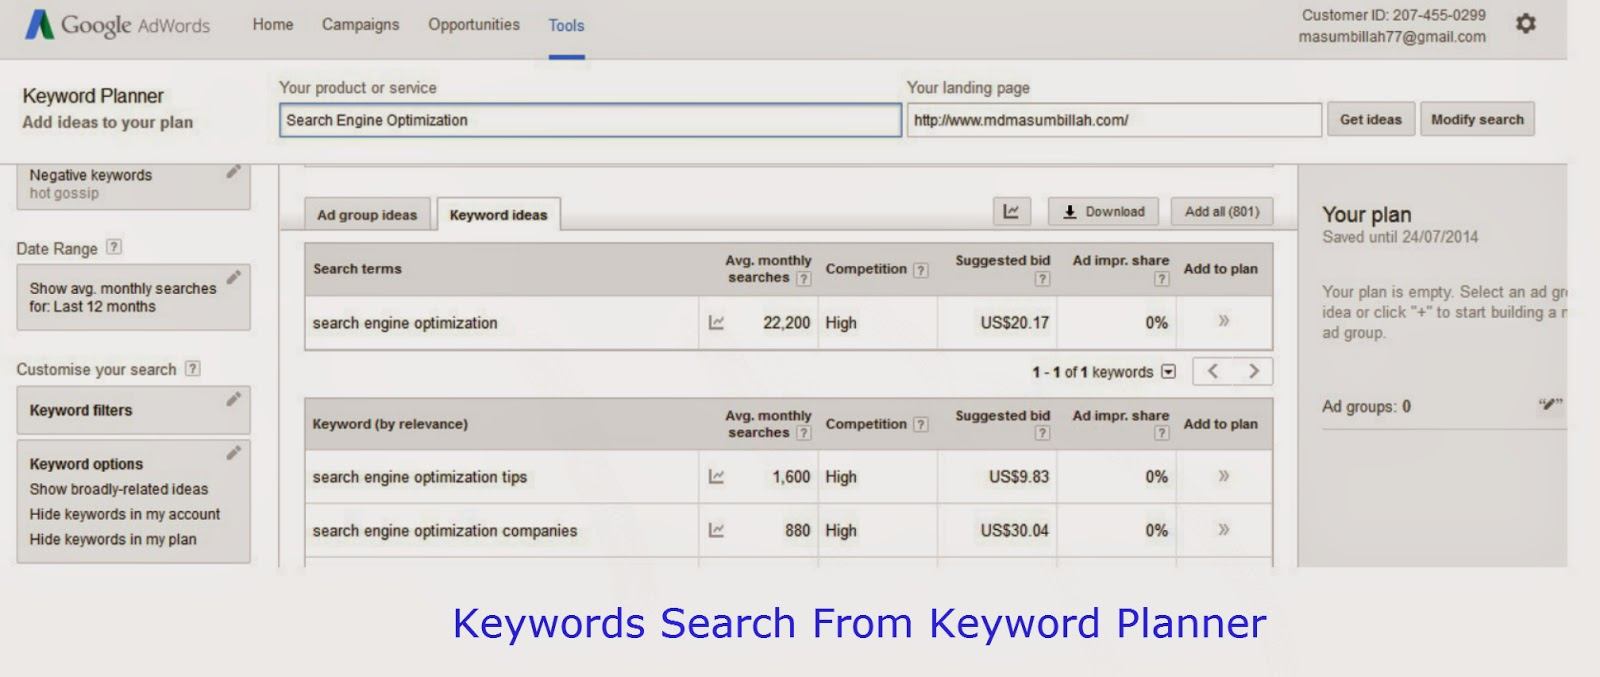 Keyword Search Idea